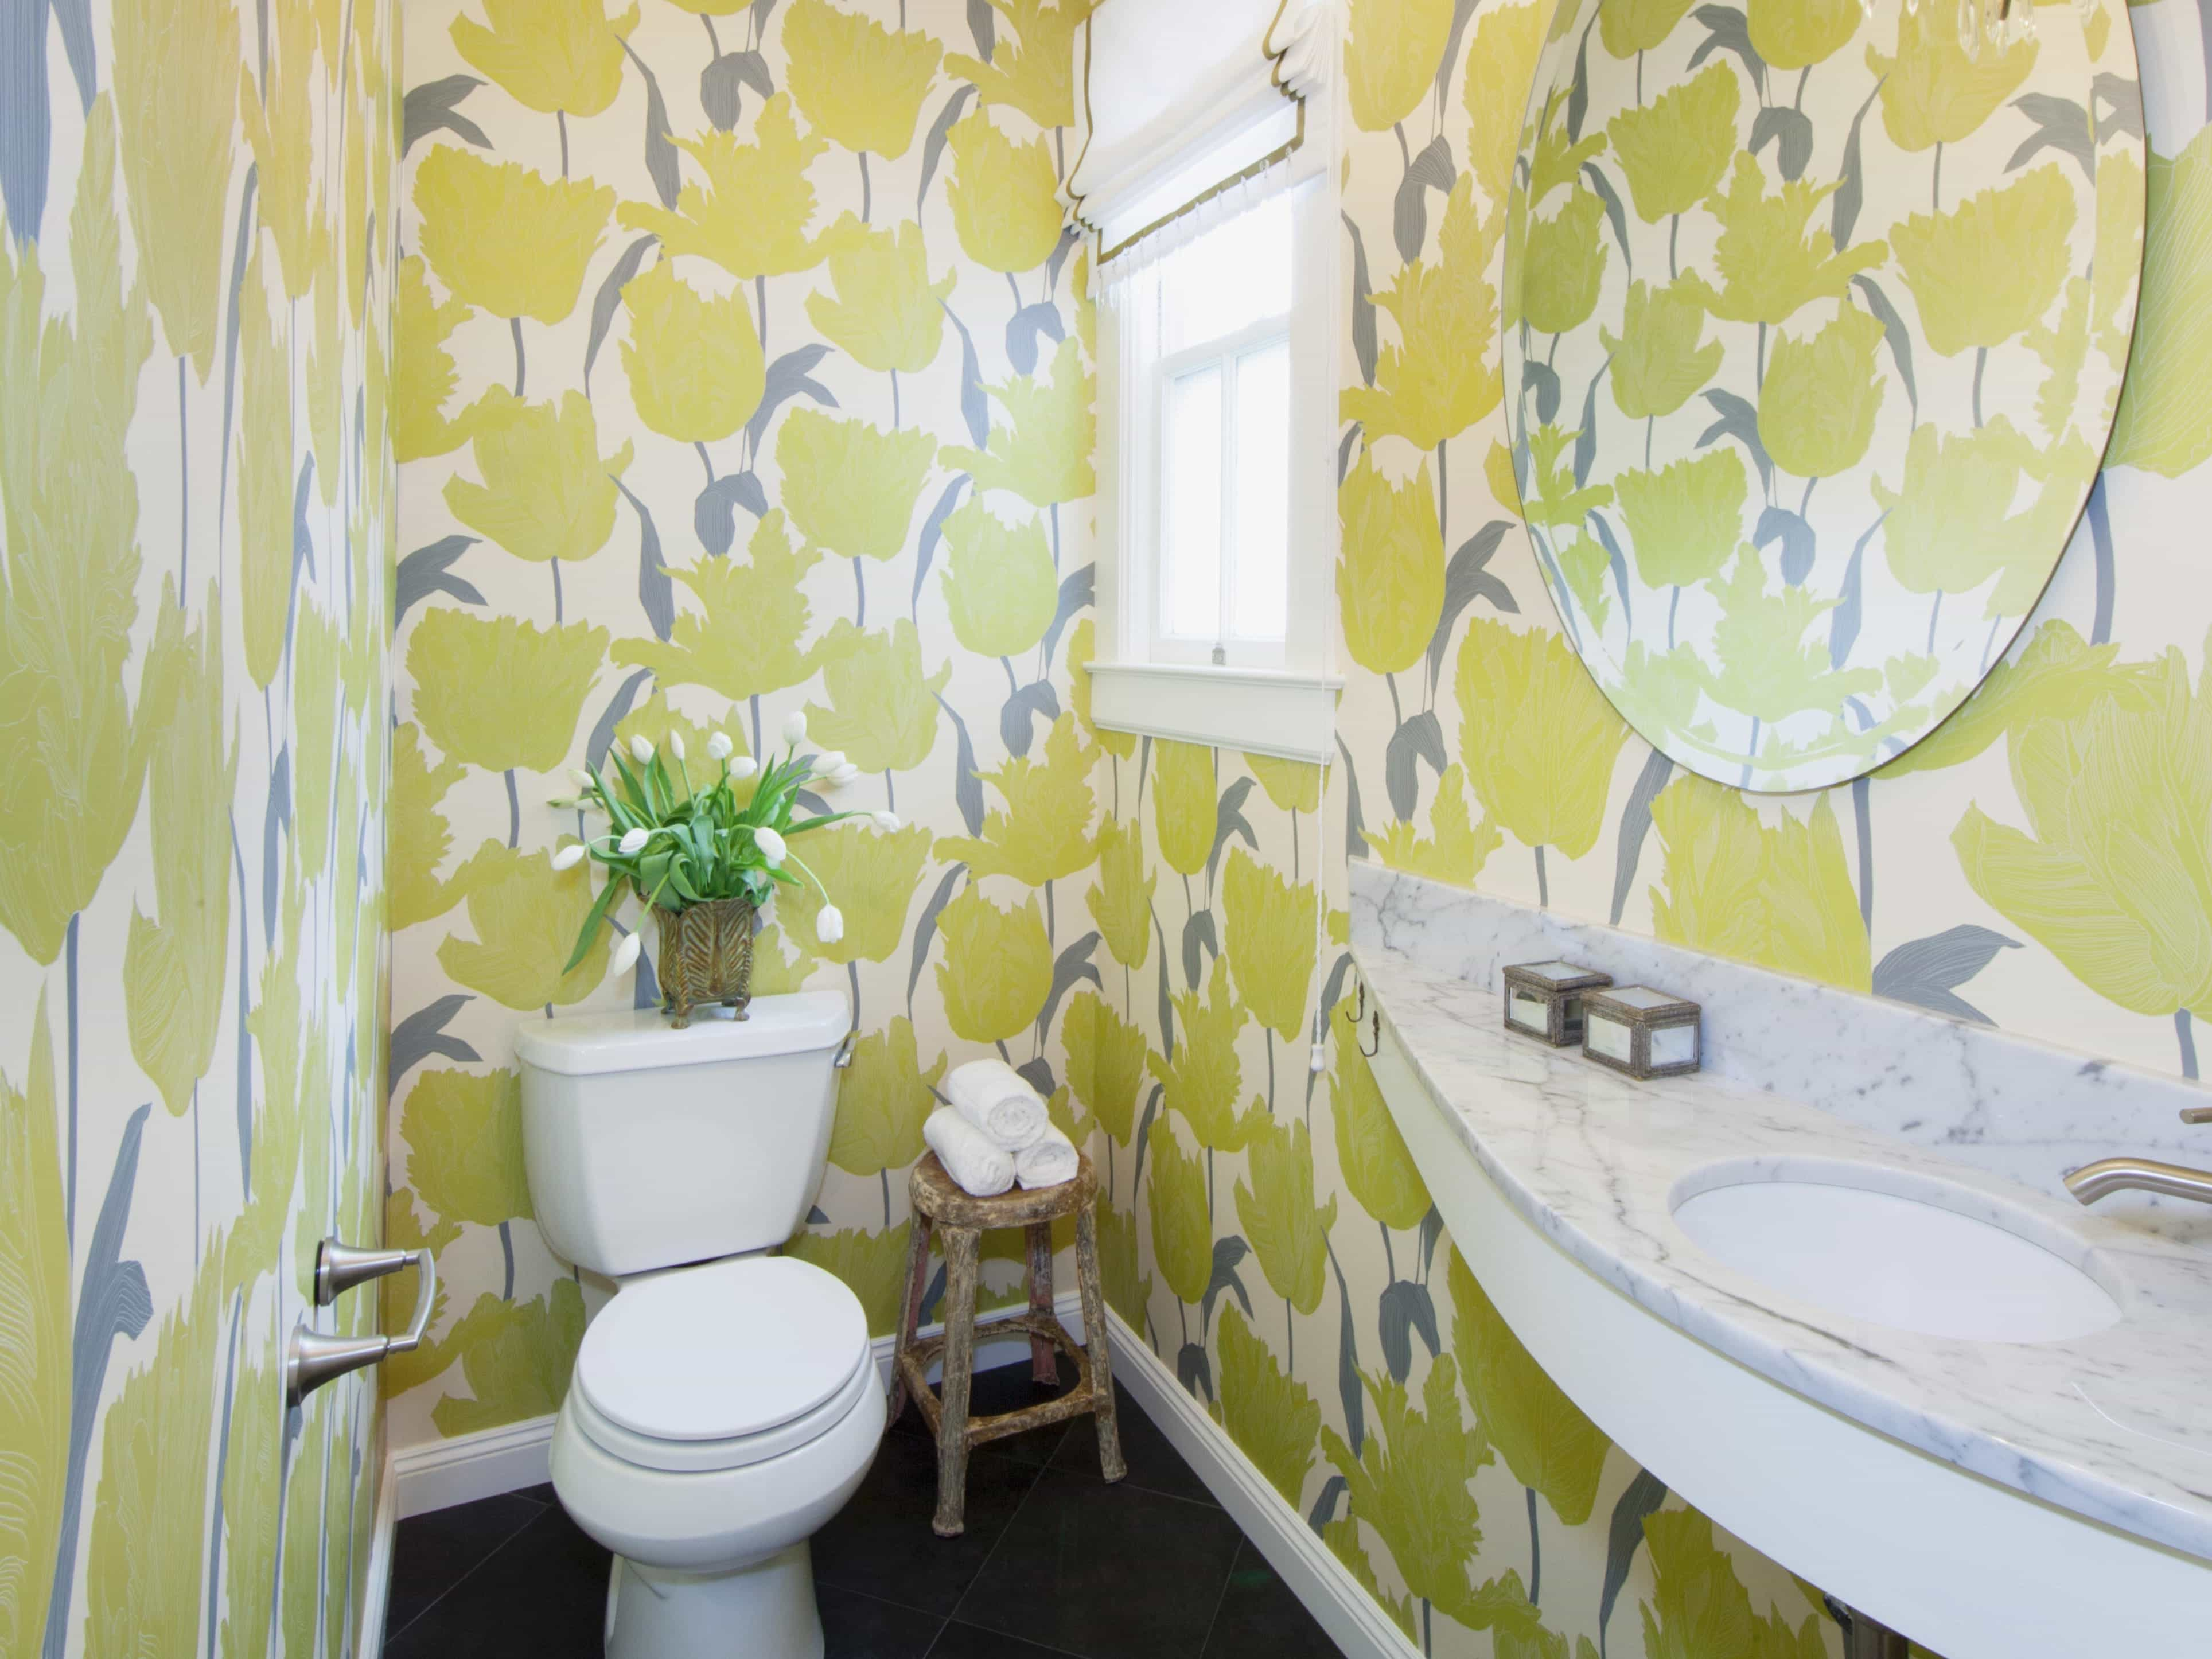 Green Tiled Wallpaper For Fresh Bathroom Nuance (View 2 of 10)